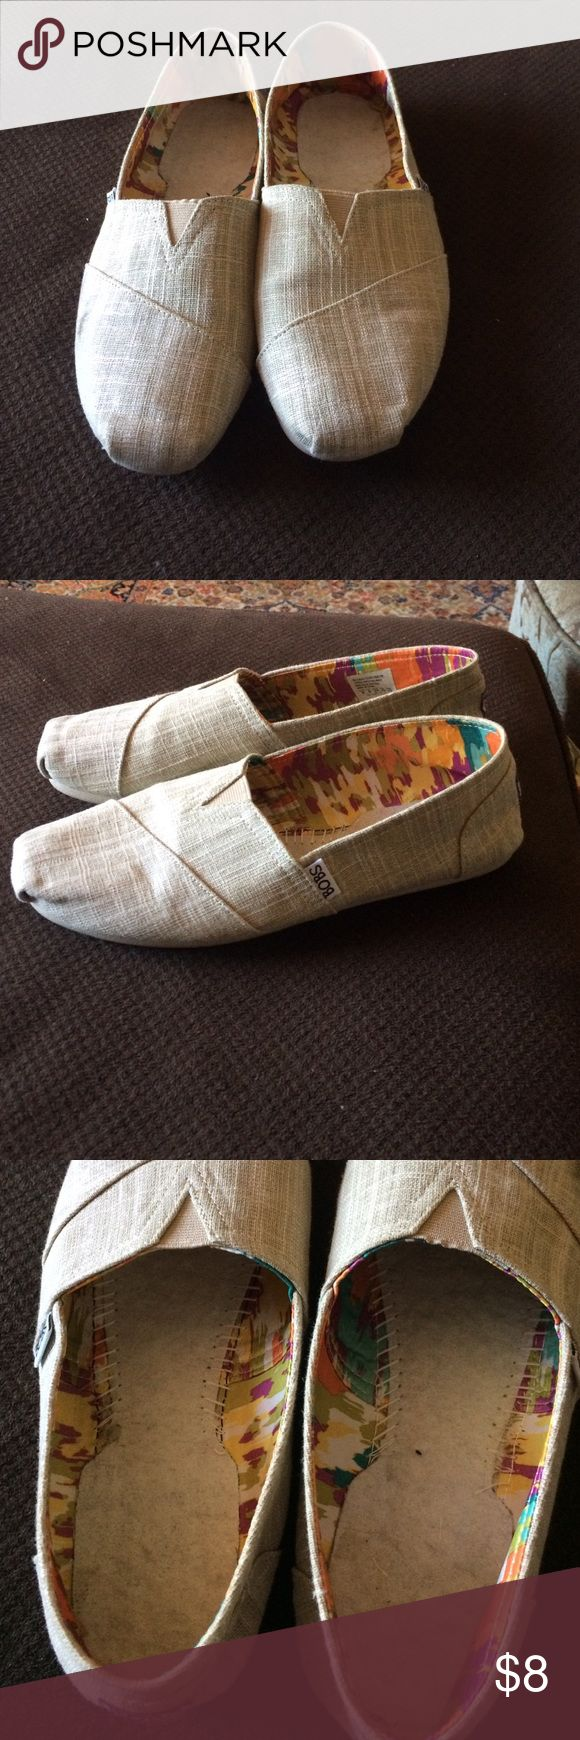 Bobs shoes Tan shoes like (toms) . A little scuff on the side. Worn maybe 3 times. Final price Shoes Flats & Loafers